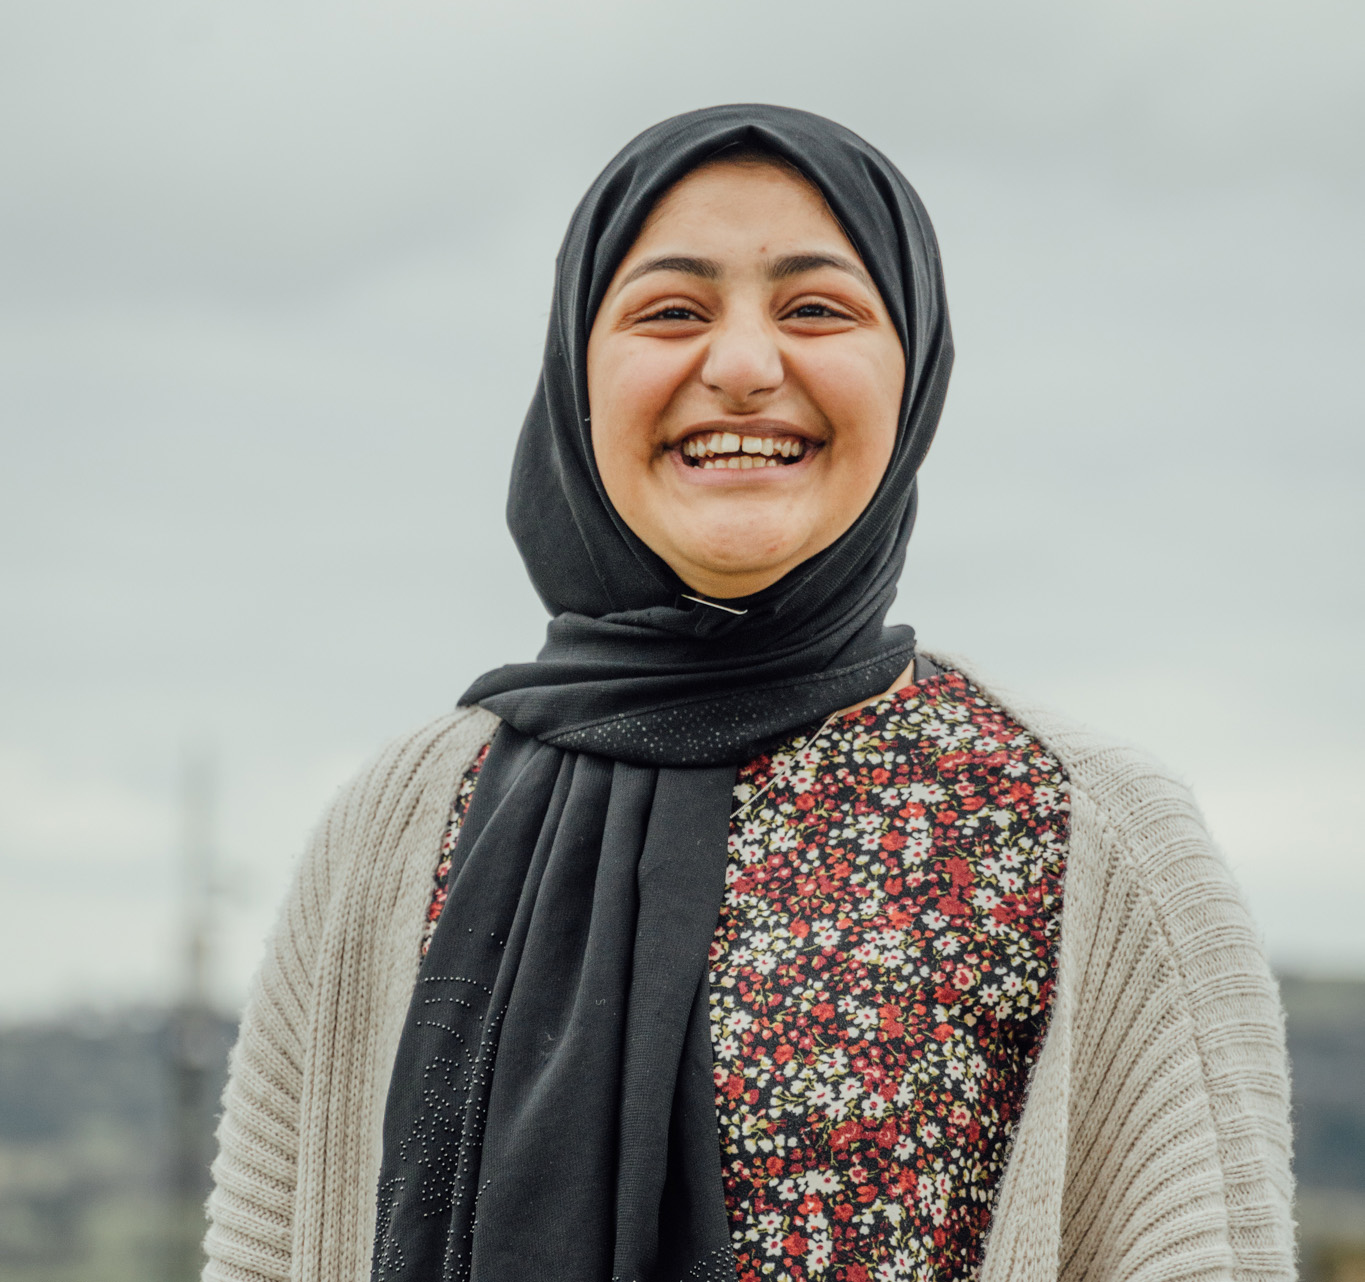 Football Beyond Borders participant in Hijab in Greater Manchester